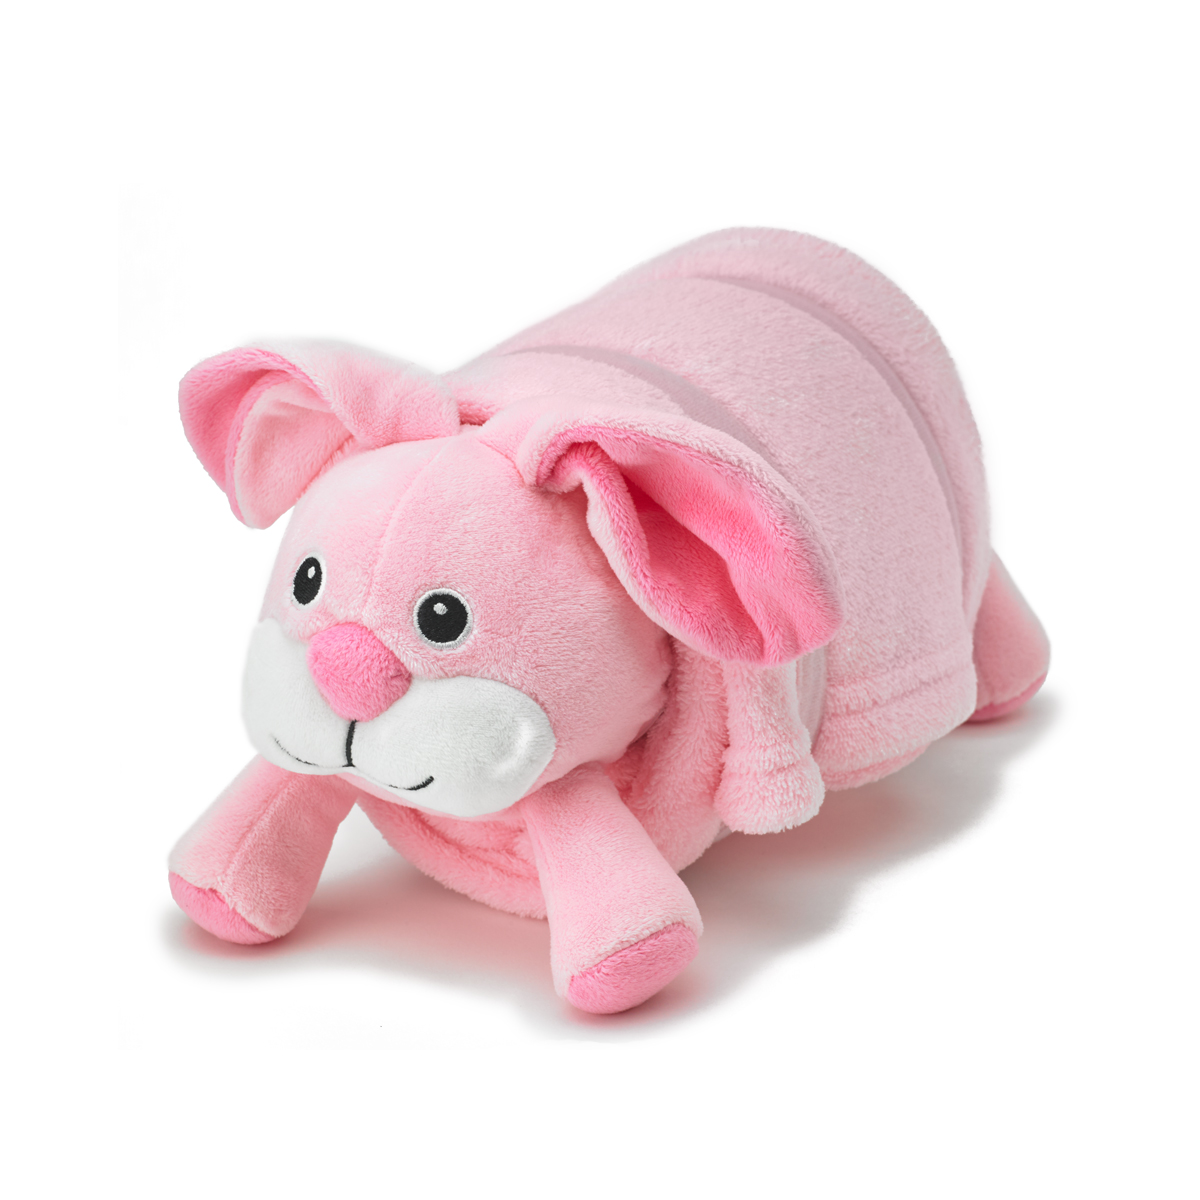 Animal Pillow Blanket : Pink Bunny Pet Plush Pillow with Blanket ? Nap Mat Cover Pillow + Blanket